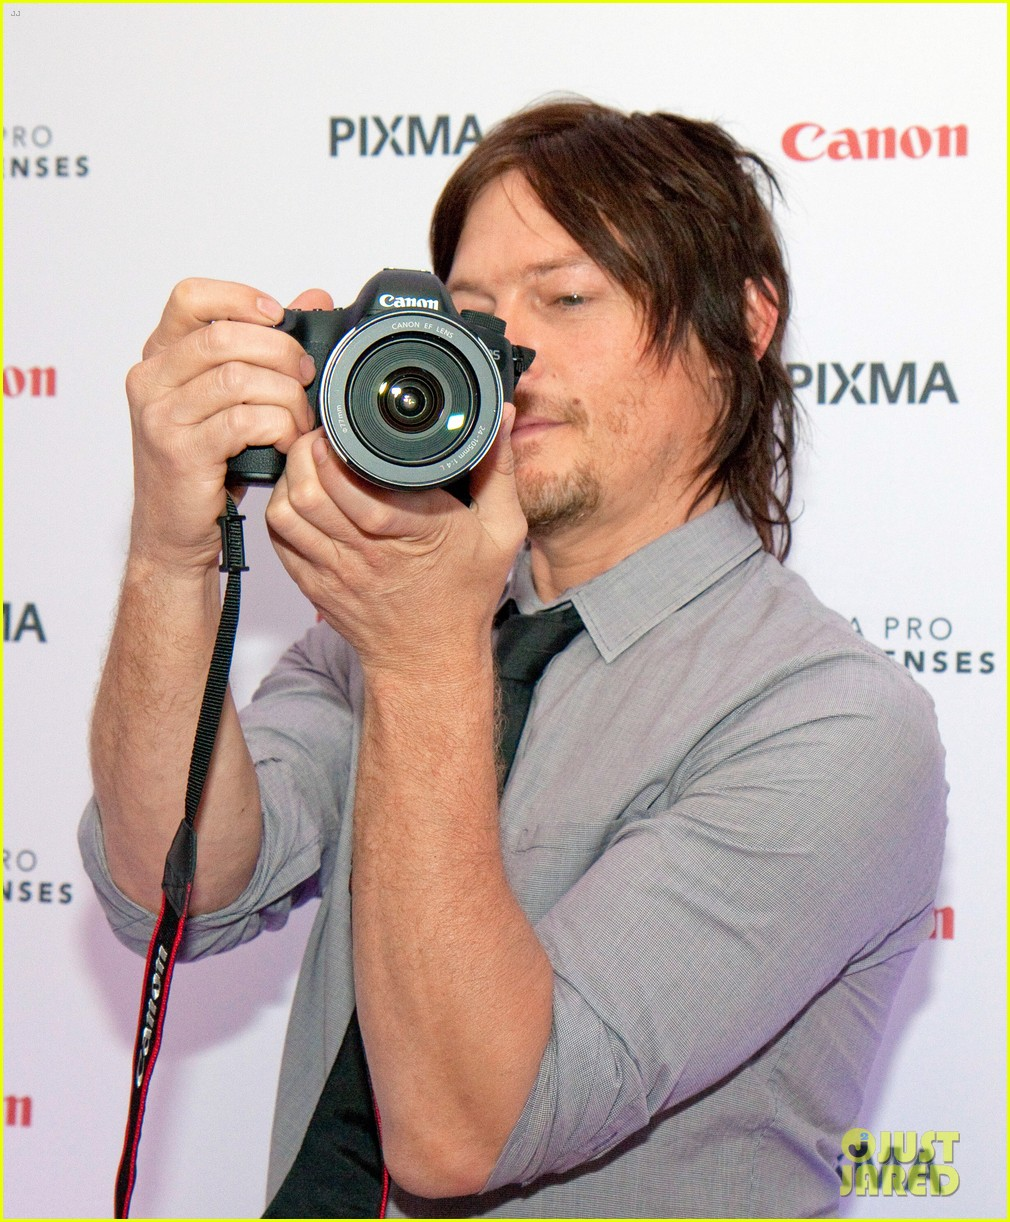 norman reedus canon pixma pro city senses gallery host 02